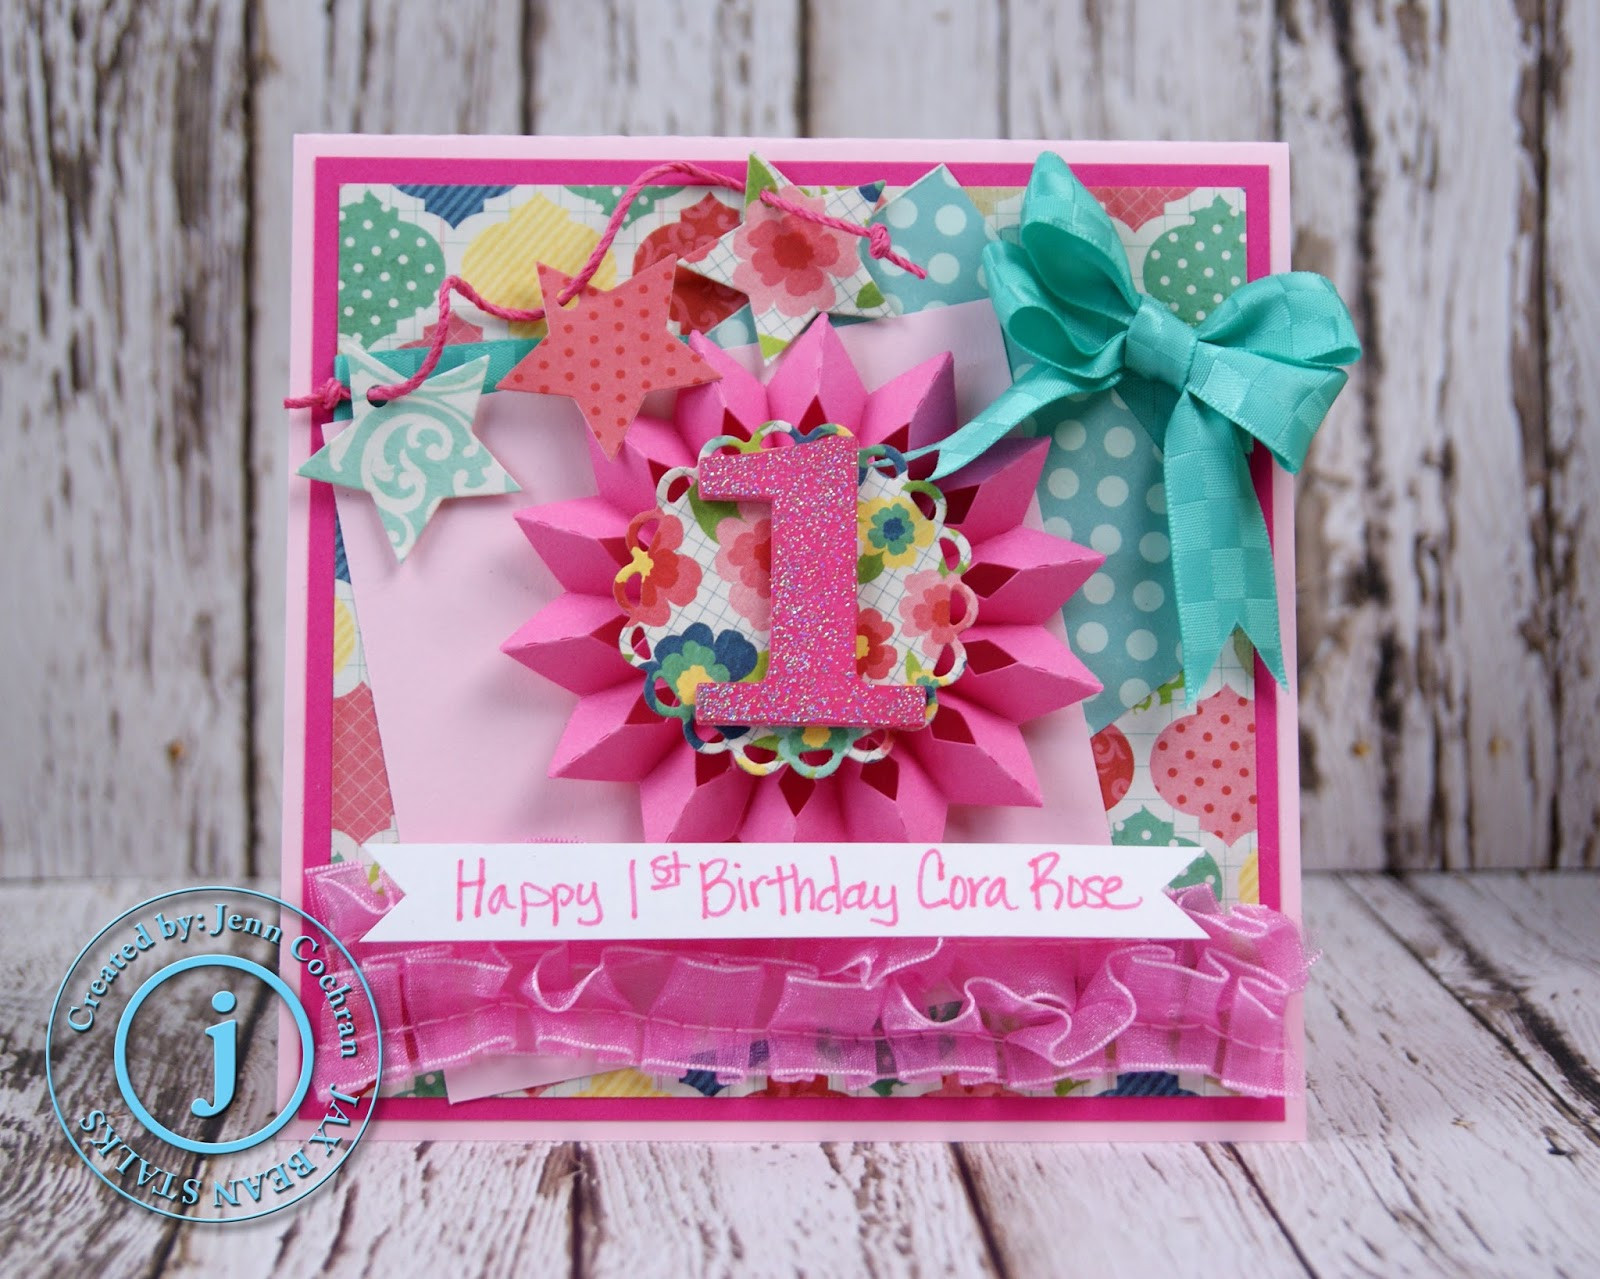 Best ideas about Homemade Birthday Gifts For Grandma . Save or Pin Homemade Birthday Card Ideas For Grandma Birthday Card Ideas Now.